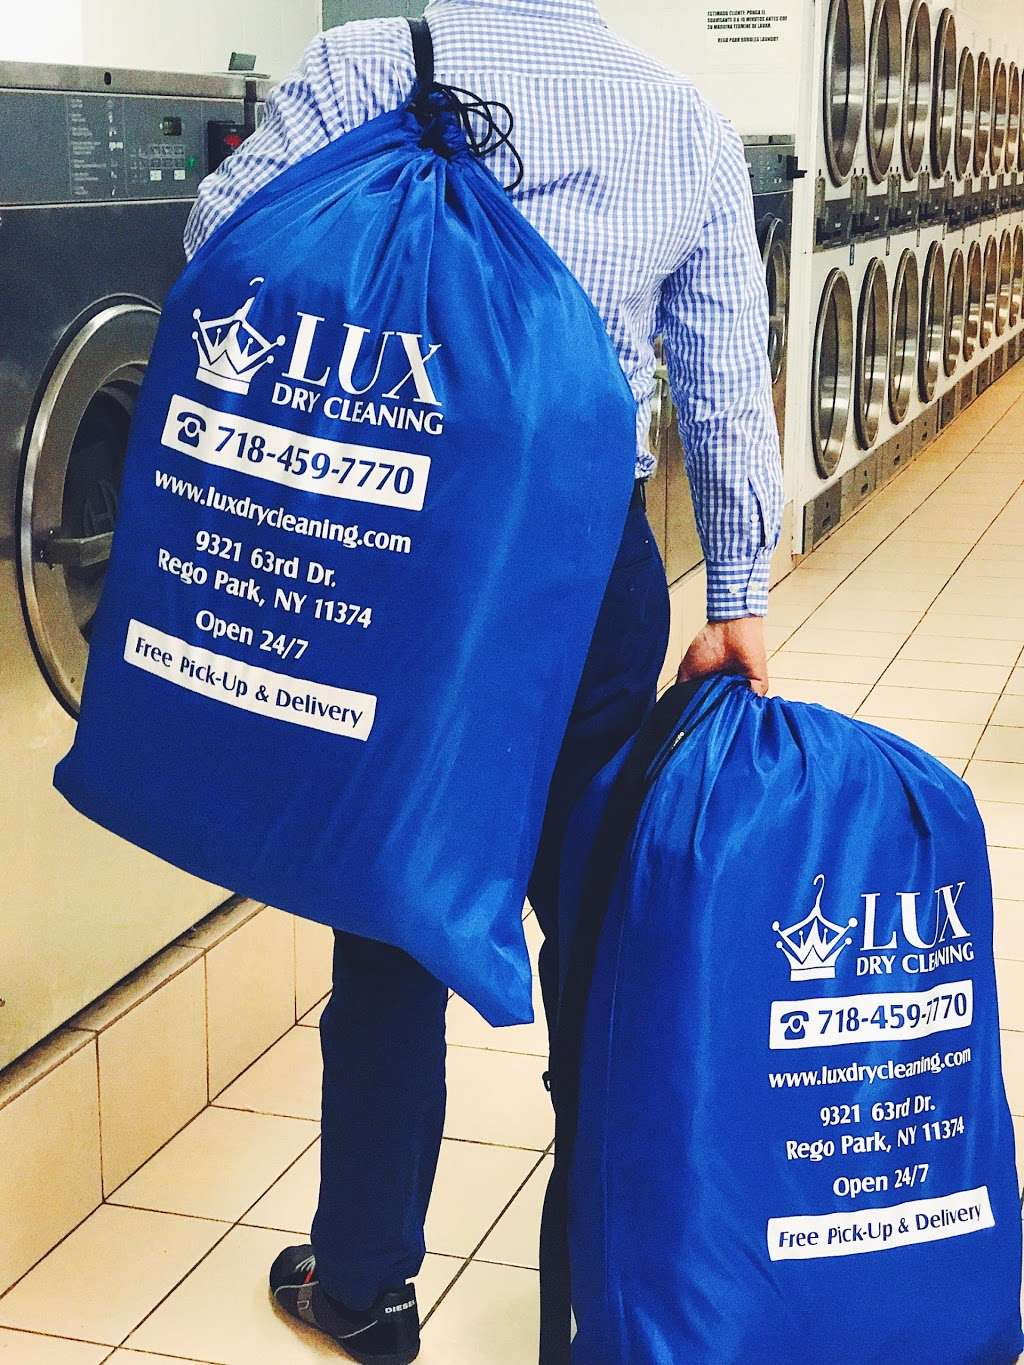 Lux Dry Cleaning - laundry  | Photo 10 of 10 | Address: 9321 63rd Dr, Rego Park, NY 11374, USA | Phone: (718) 459-7770